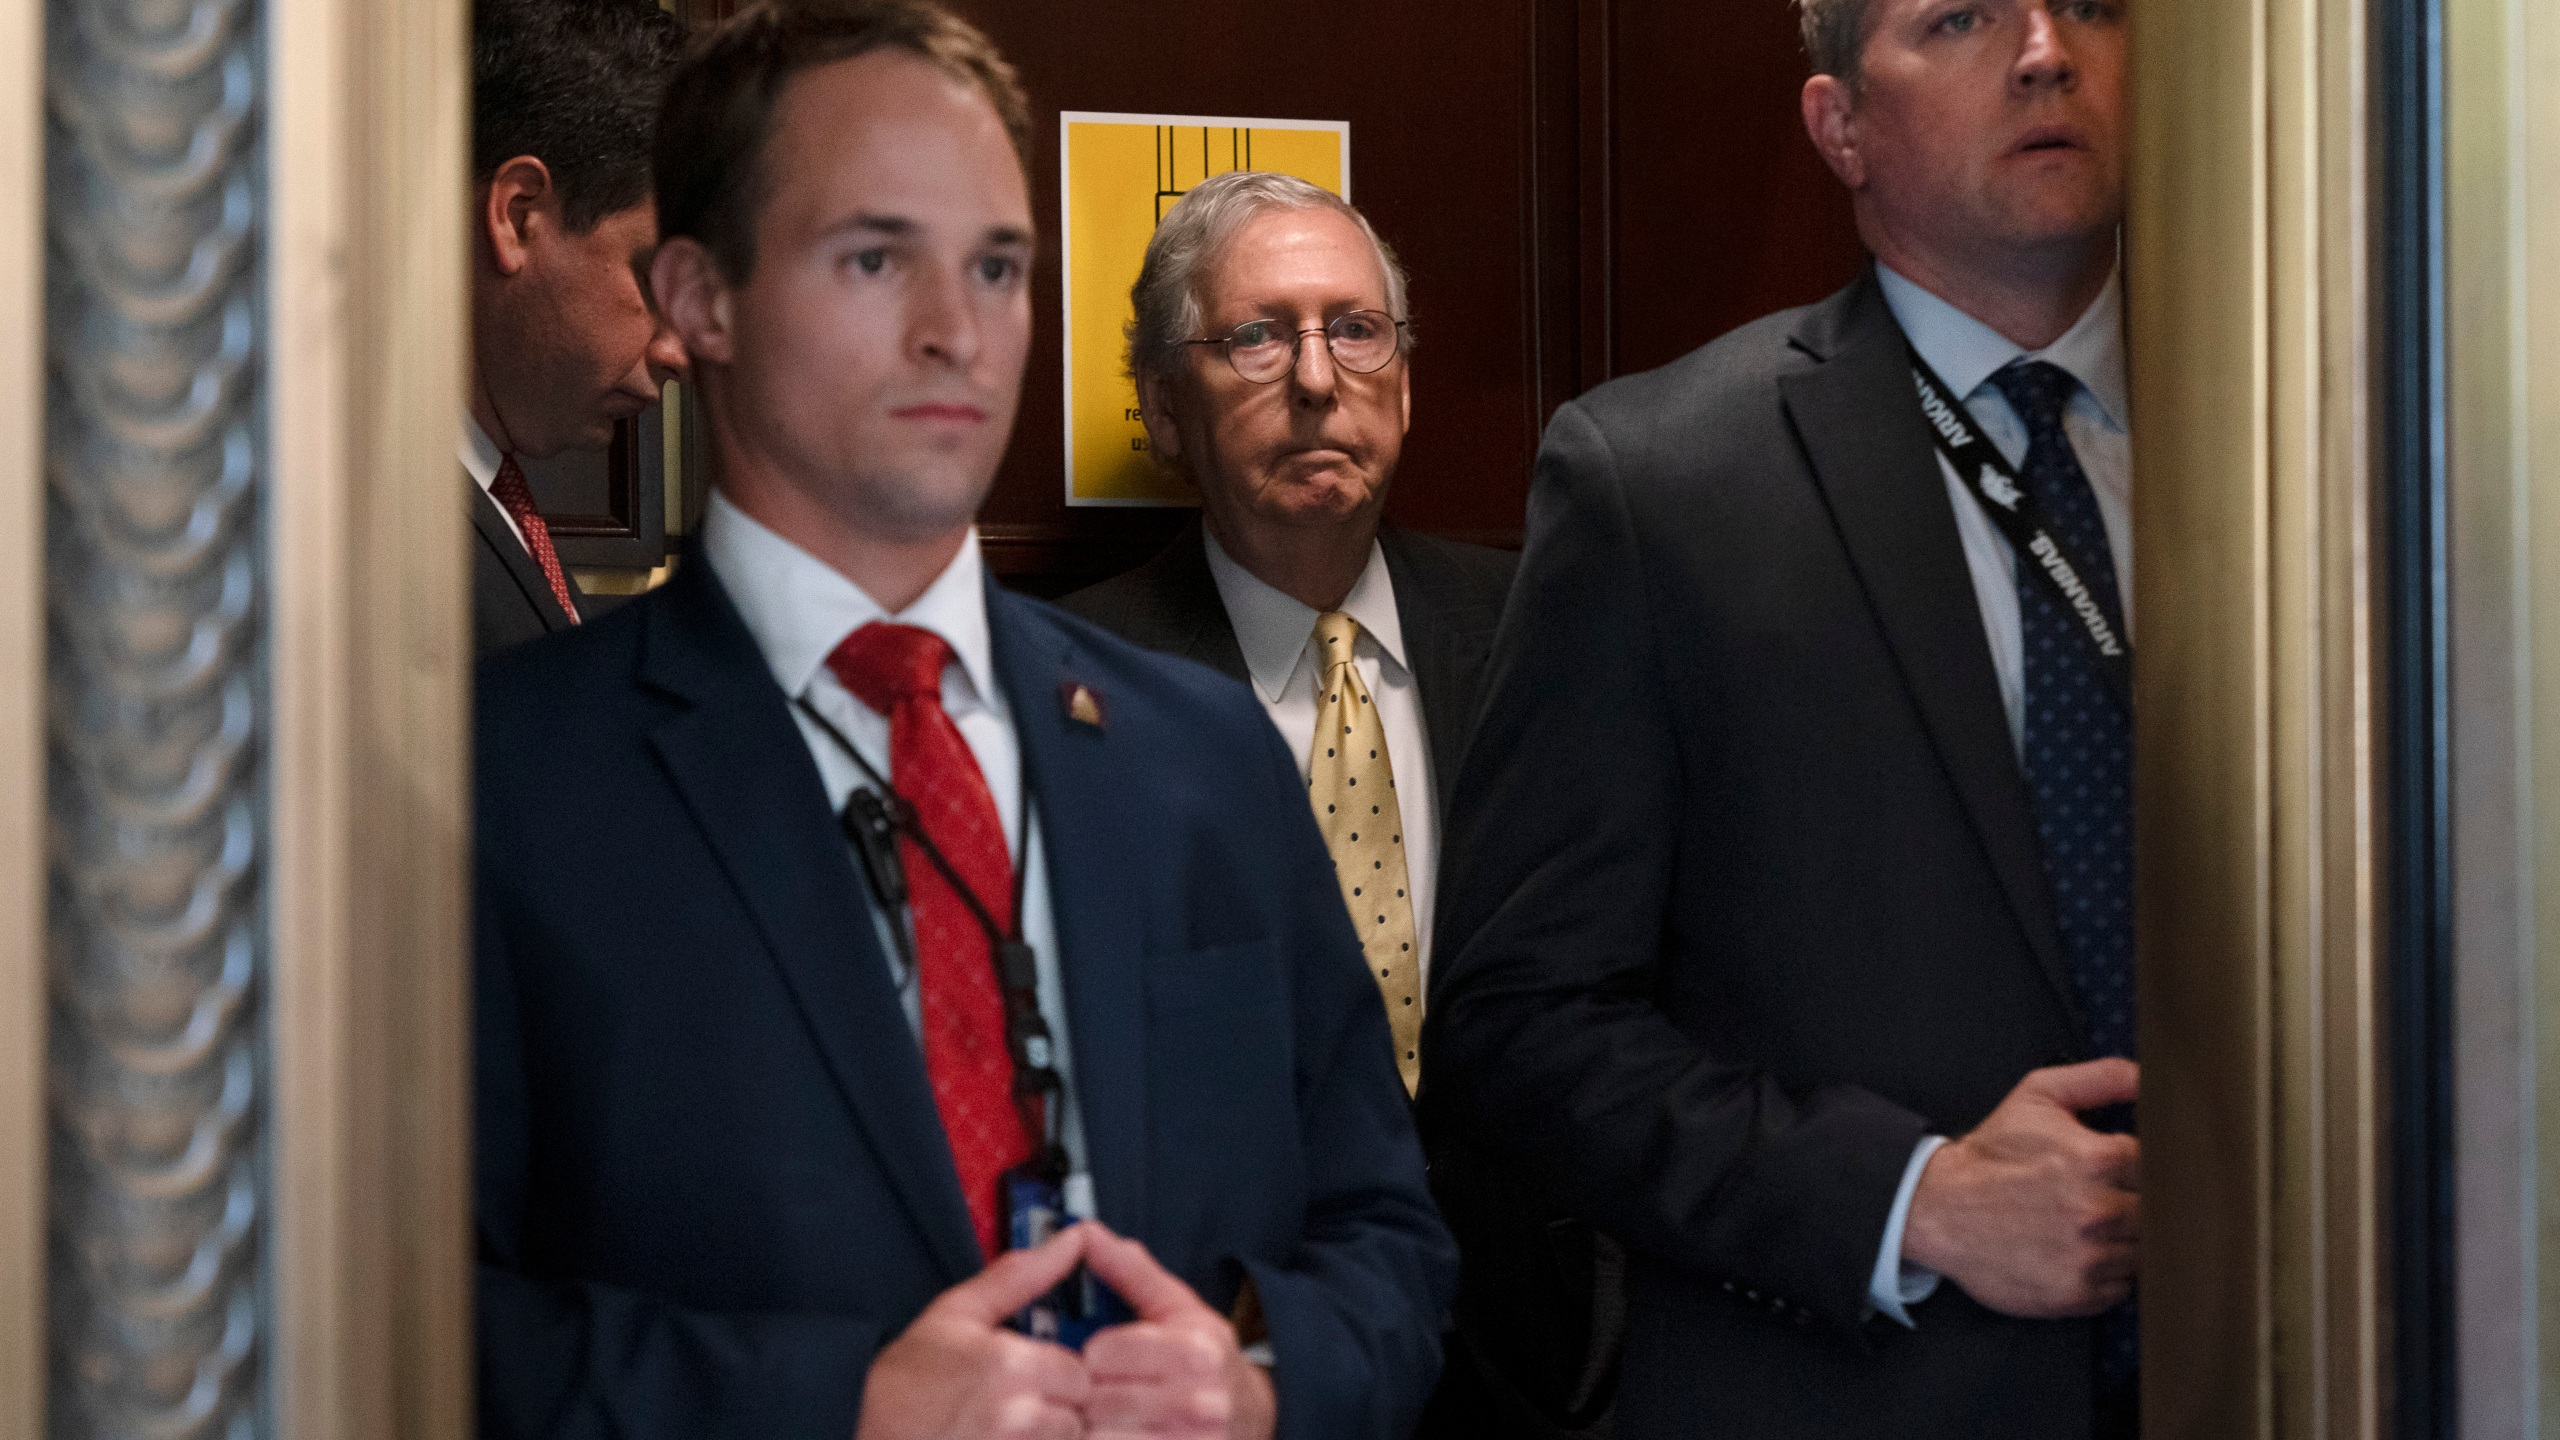 Senate Minority Leader Mitch McConnell of Ky., center, takes an elevator, Tuesday, May 18, 2021, after a meeting with Senate Republicans on Capitol Hill in Washington. (AP Photo/Jacquelyn Martin)